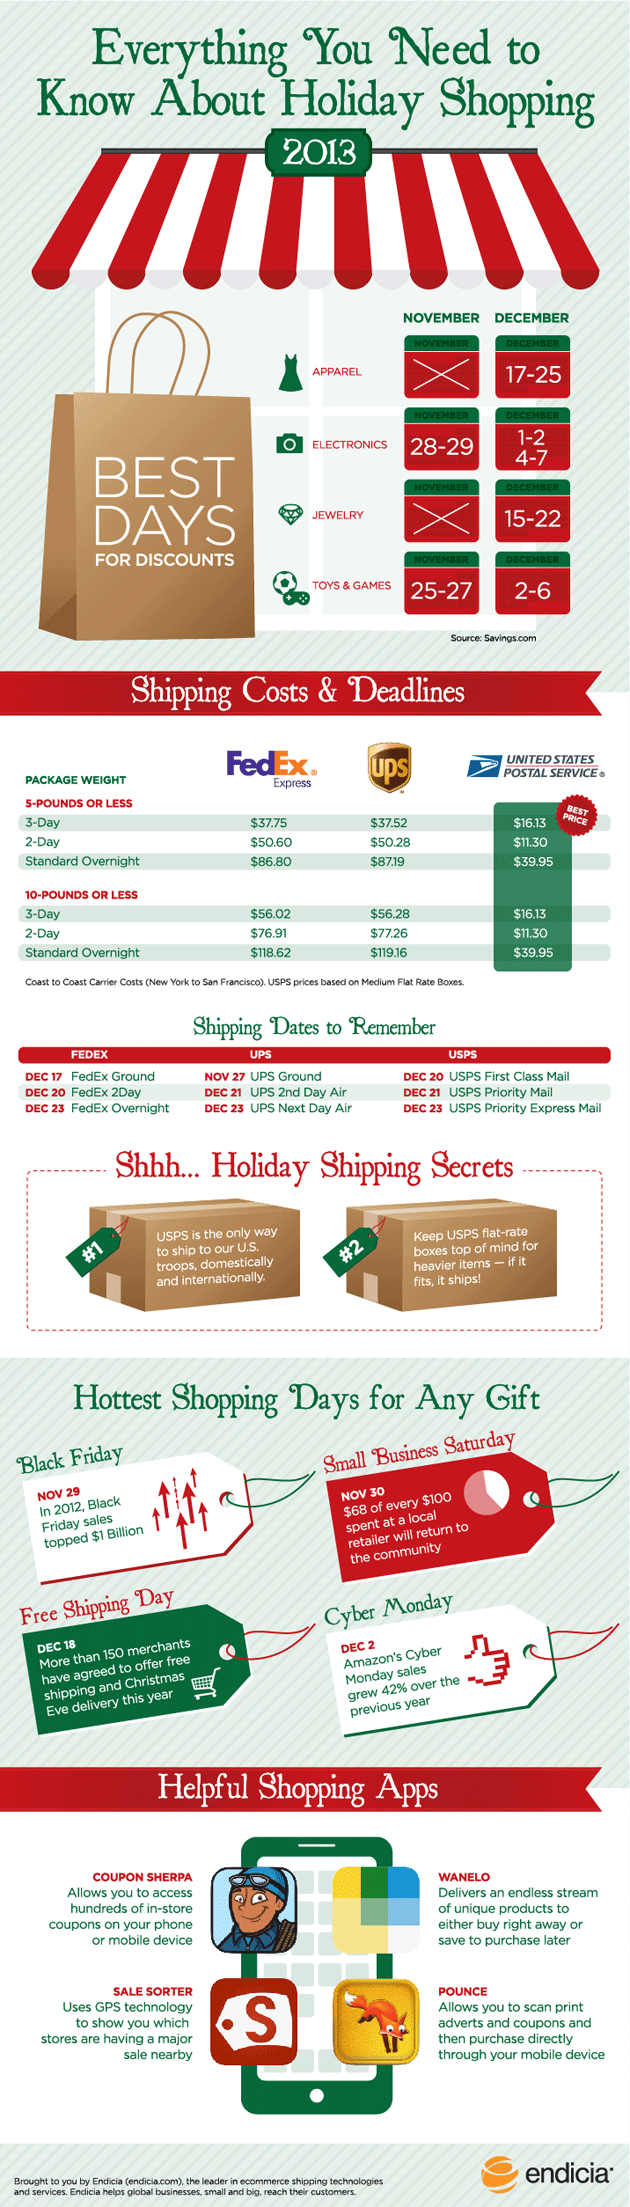 infographic holiday marketing 101